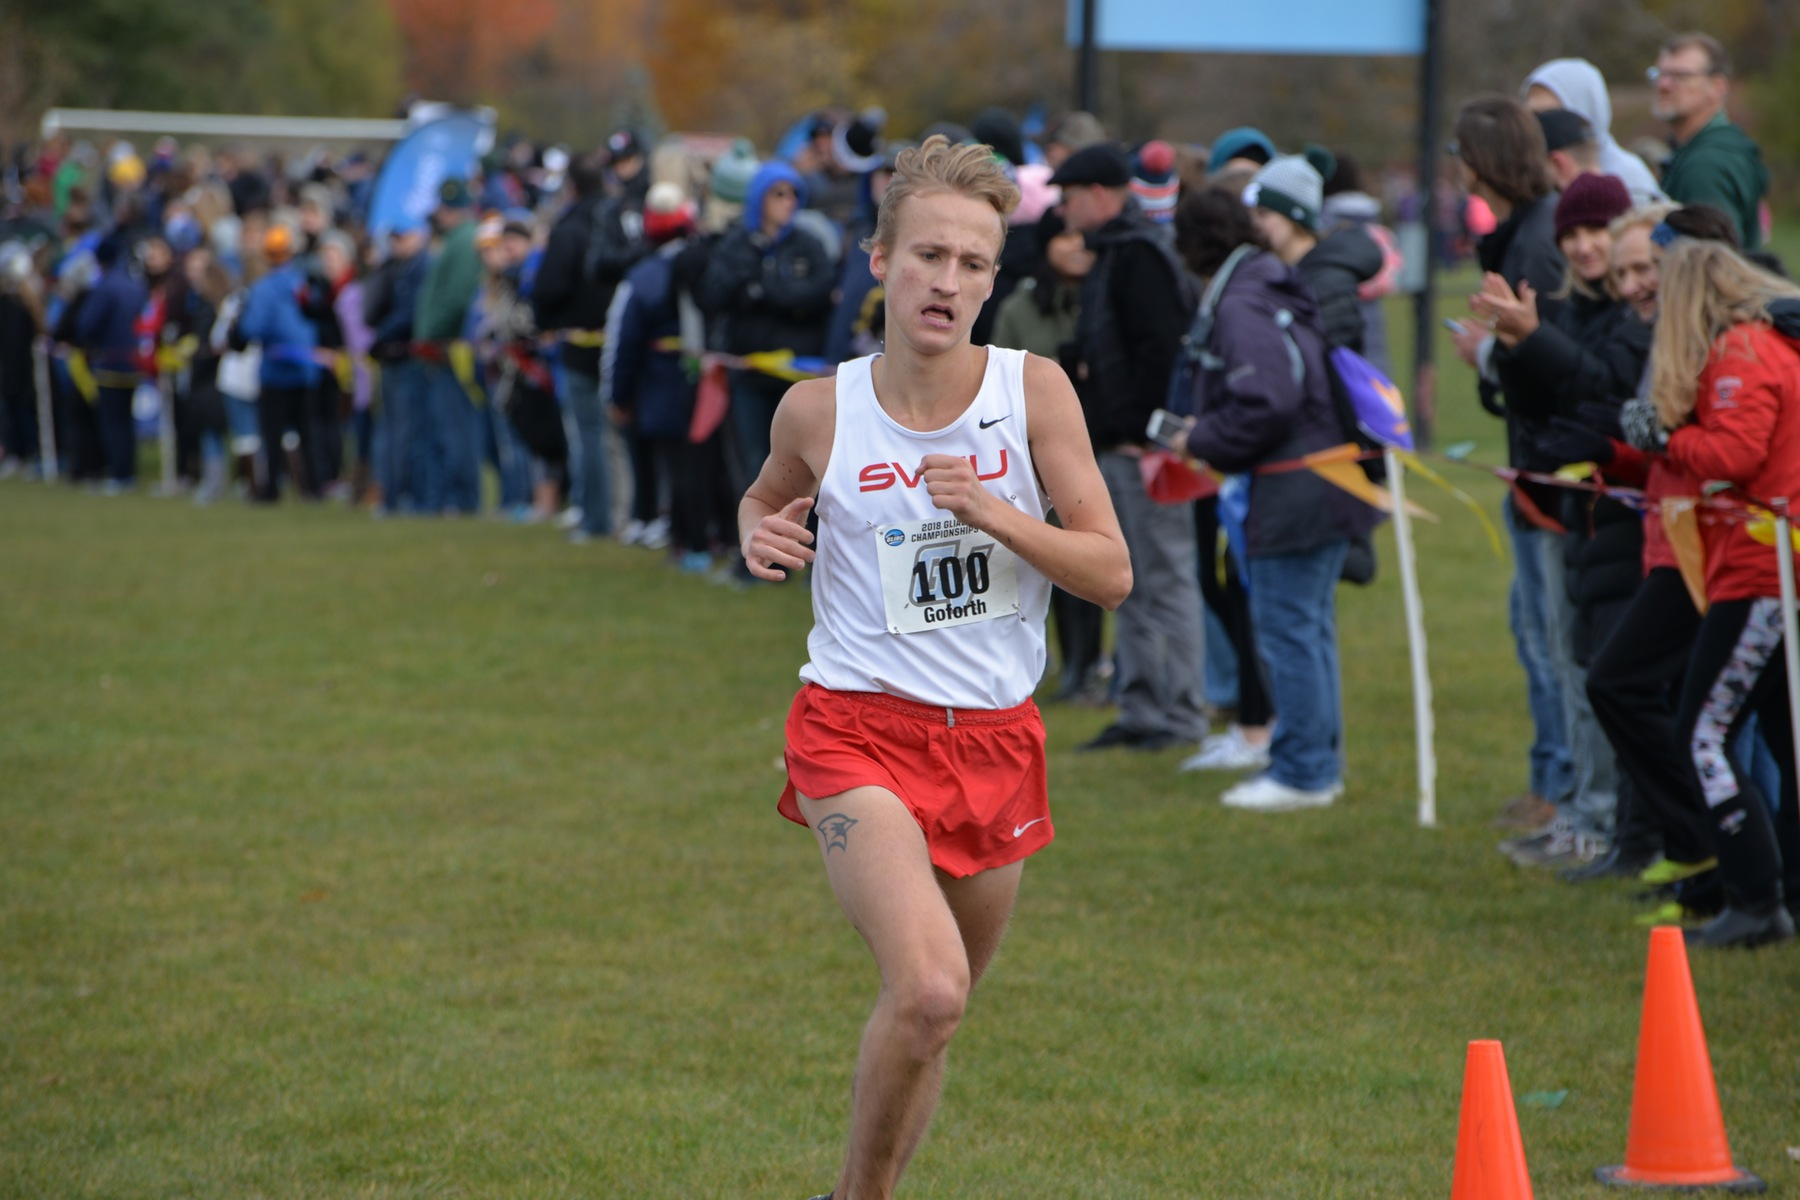 Tom Goforth - Cross Country